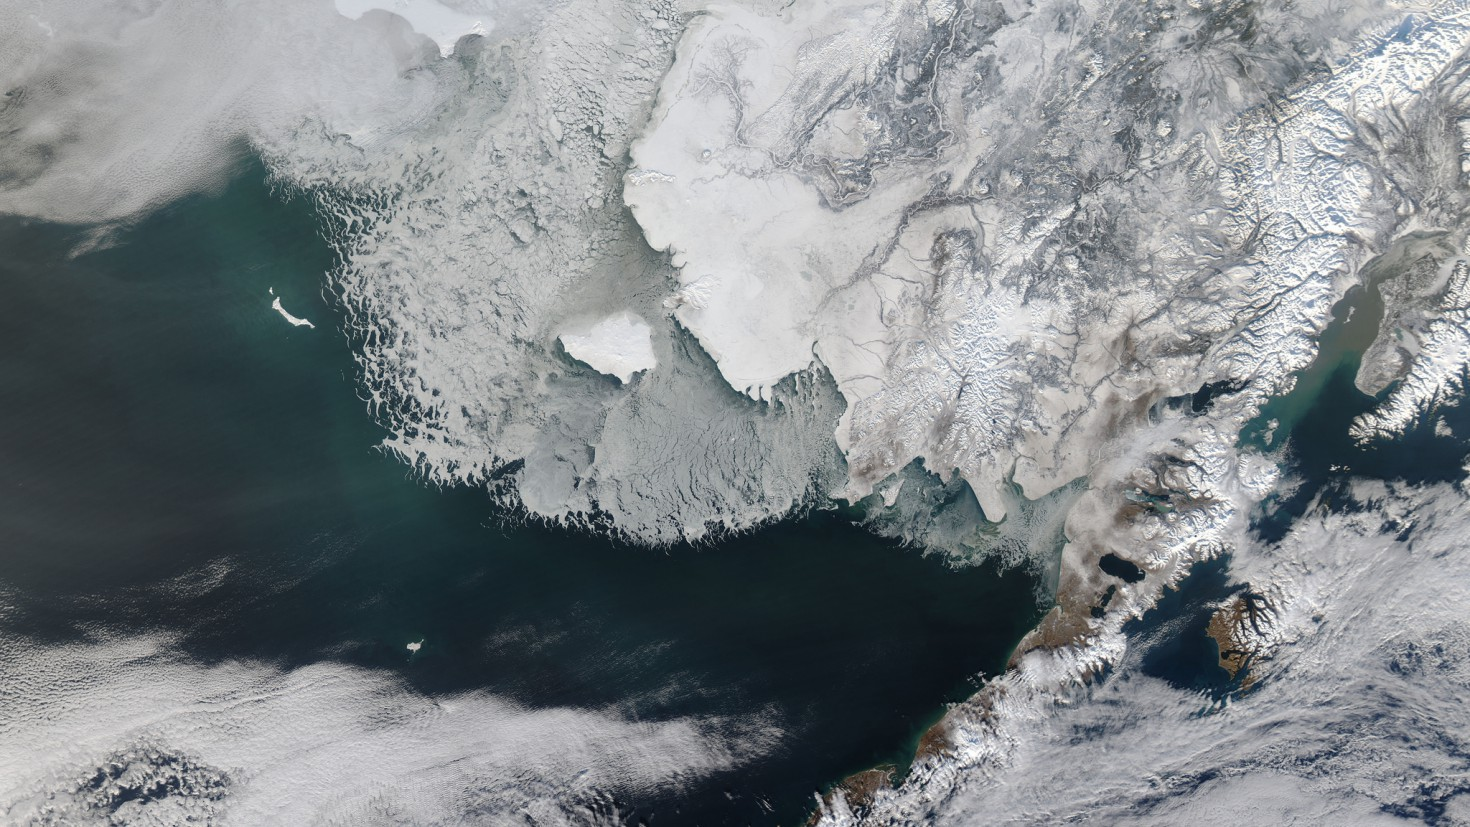 for ca. 4,5 millioner år siden var Beringstredet nord for Grønland åpent, viser ny forskning. Foto: NASA Goddard Space Flight Center @ flickr